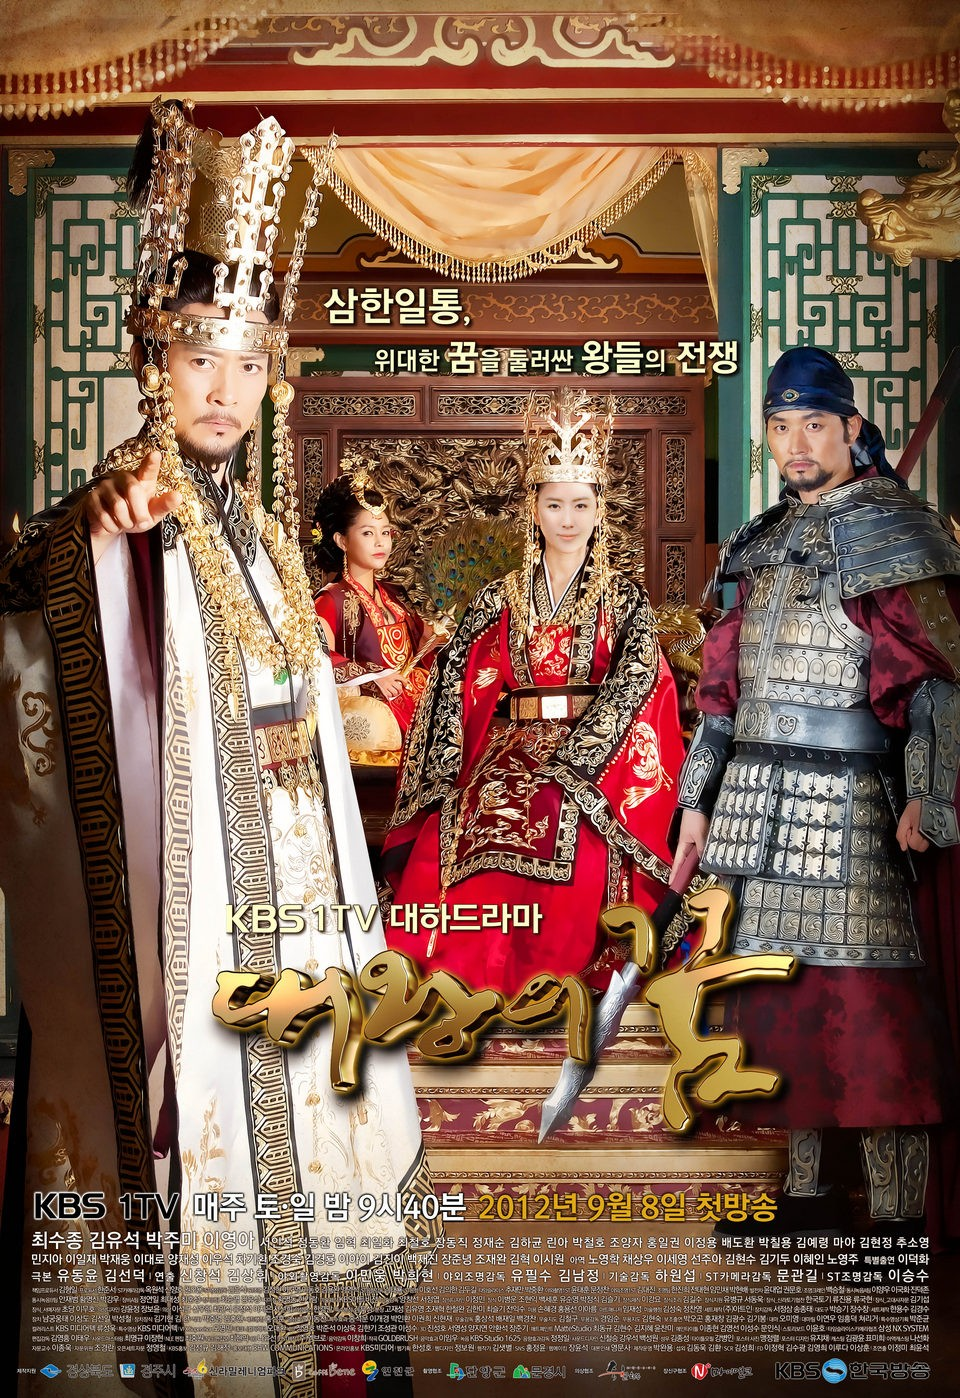 Gyeongju kdrama dream of the emperor